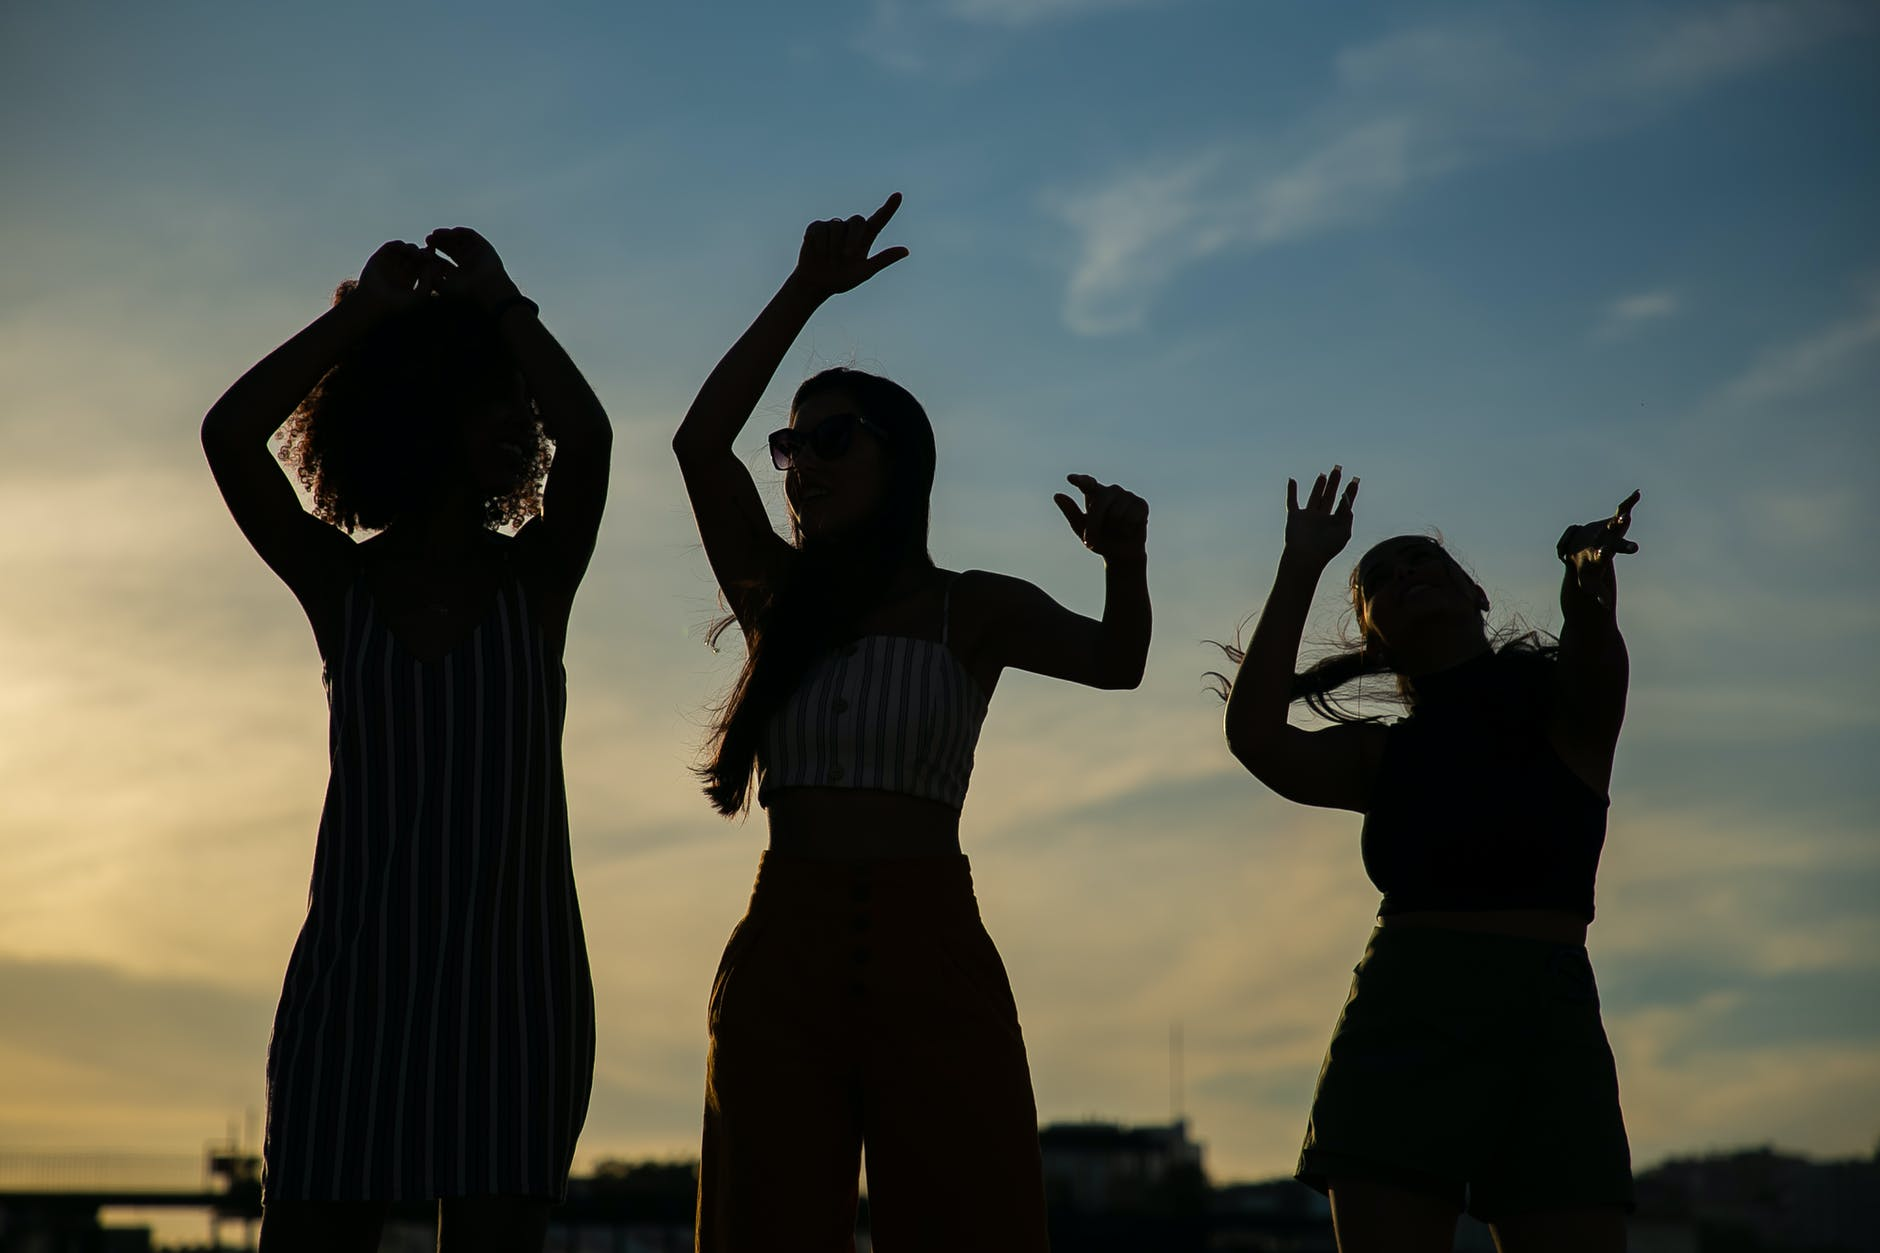 anonymous girlfriends dancing against sunset sky